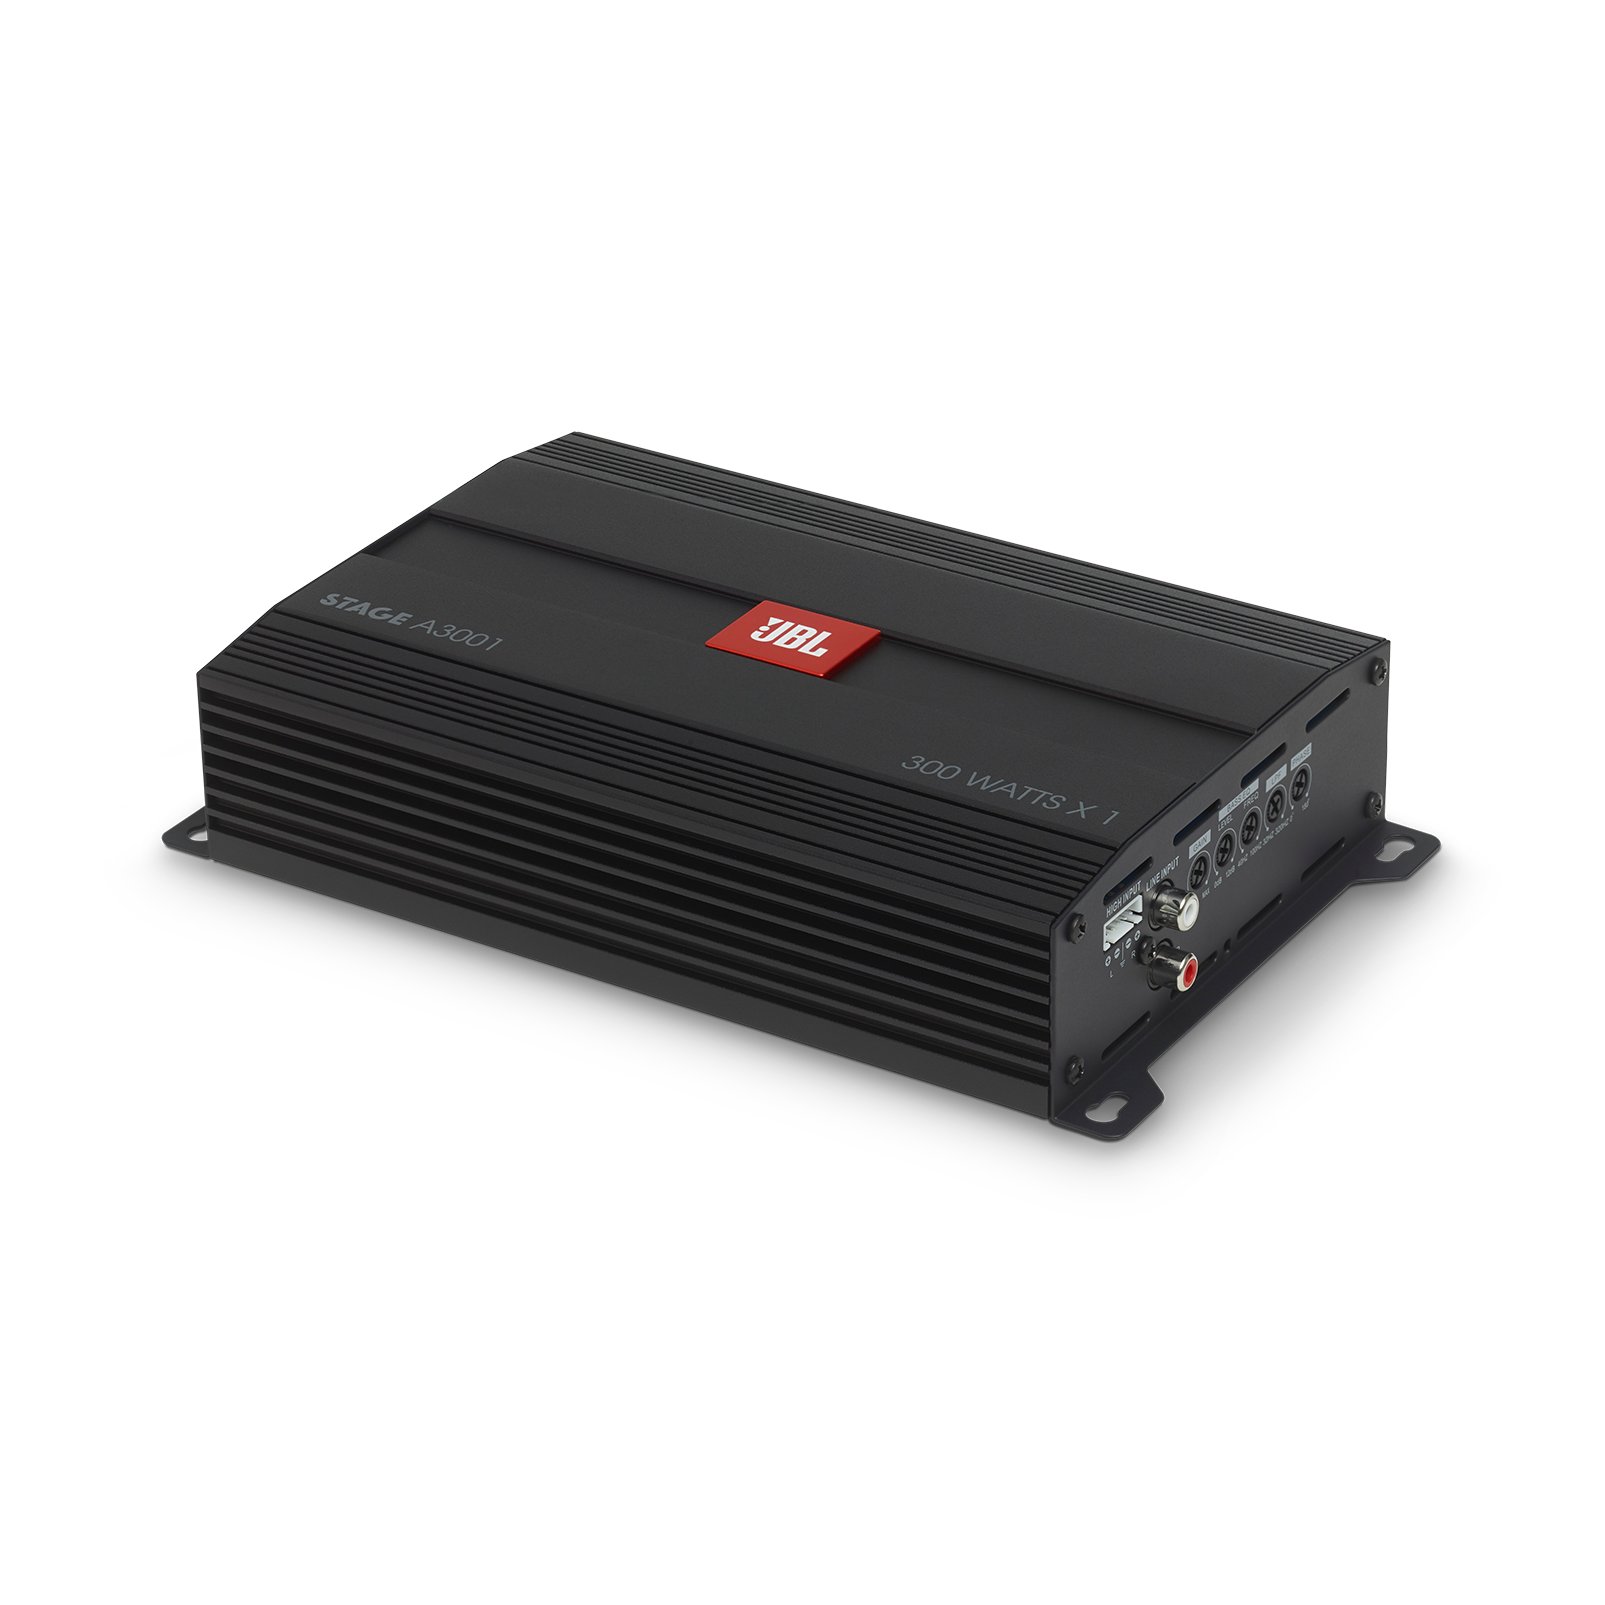 JBL Stage Amplifier A3001 - Black - Class D Car Audio Amplifier - Hero